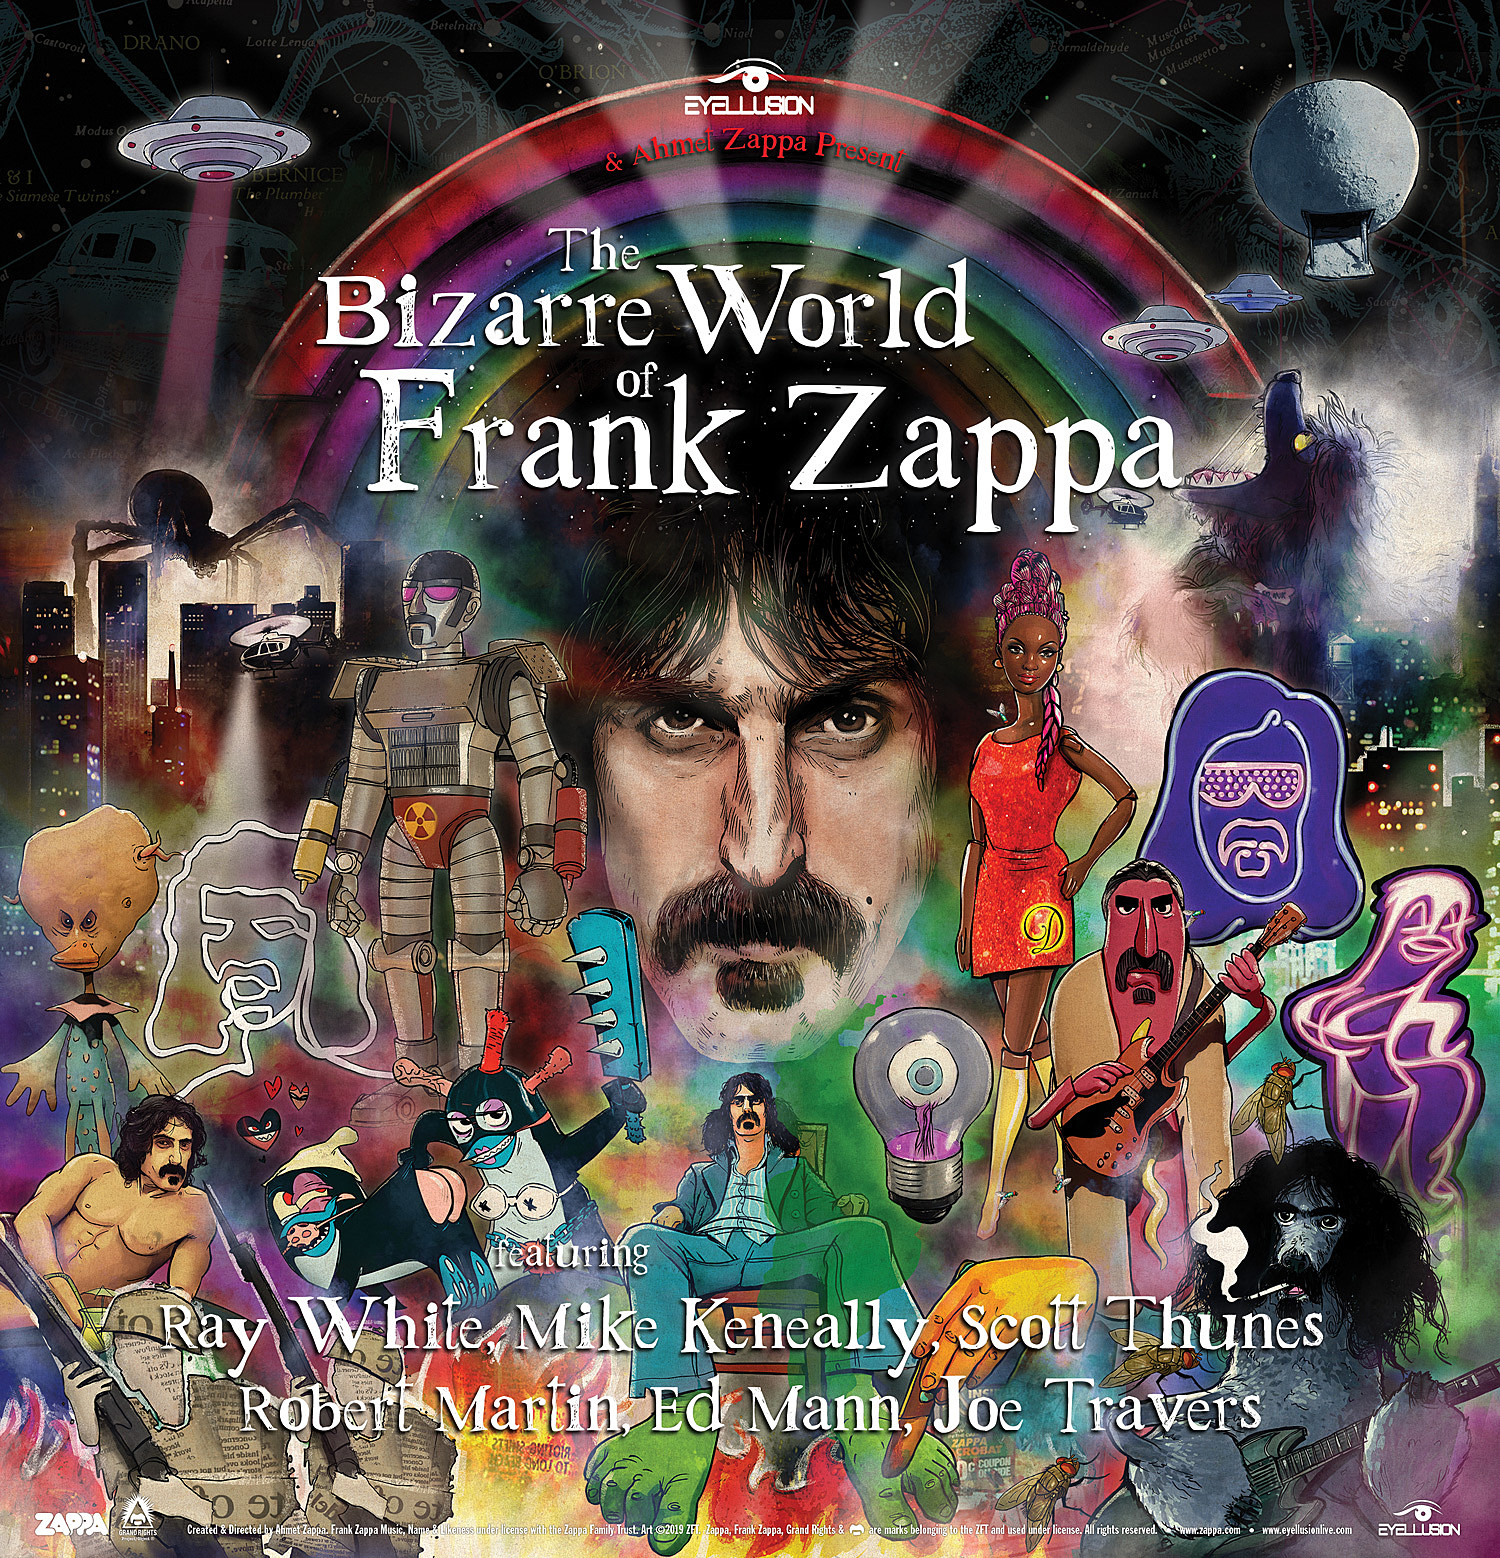 Frank Zappa hologram tour Bizarre World